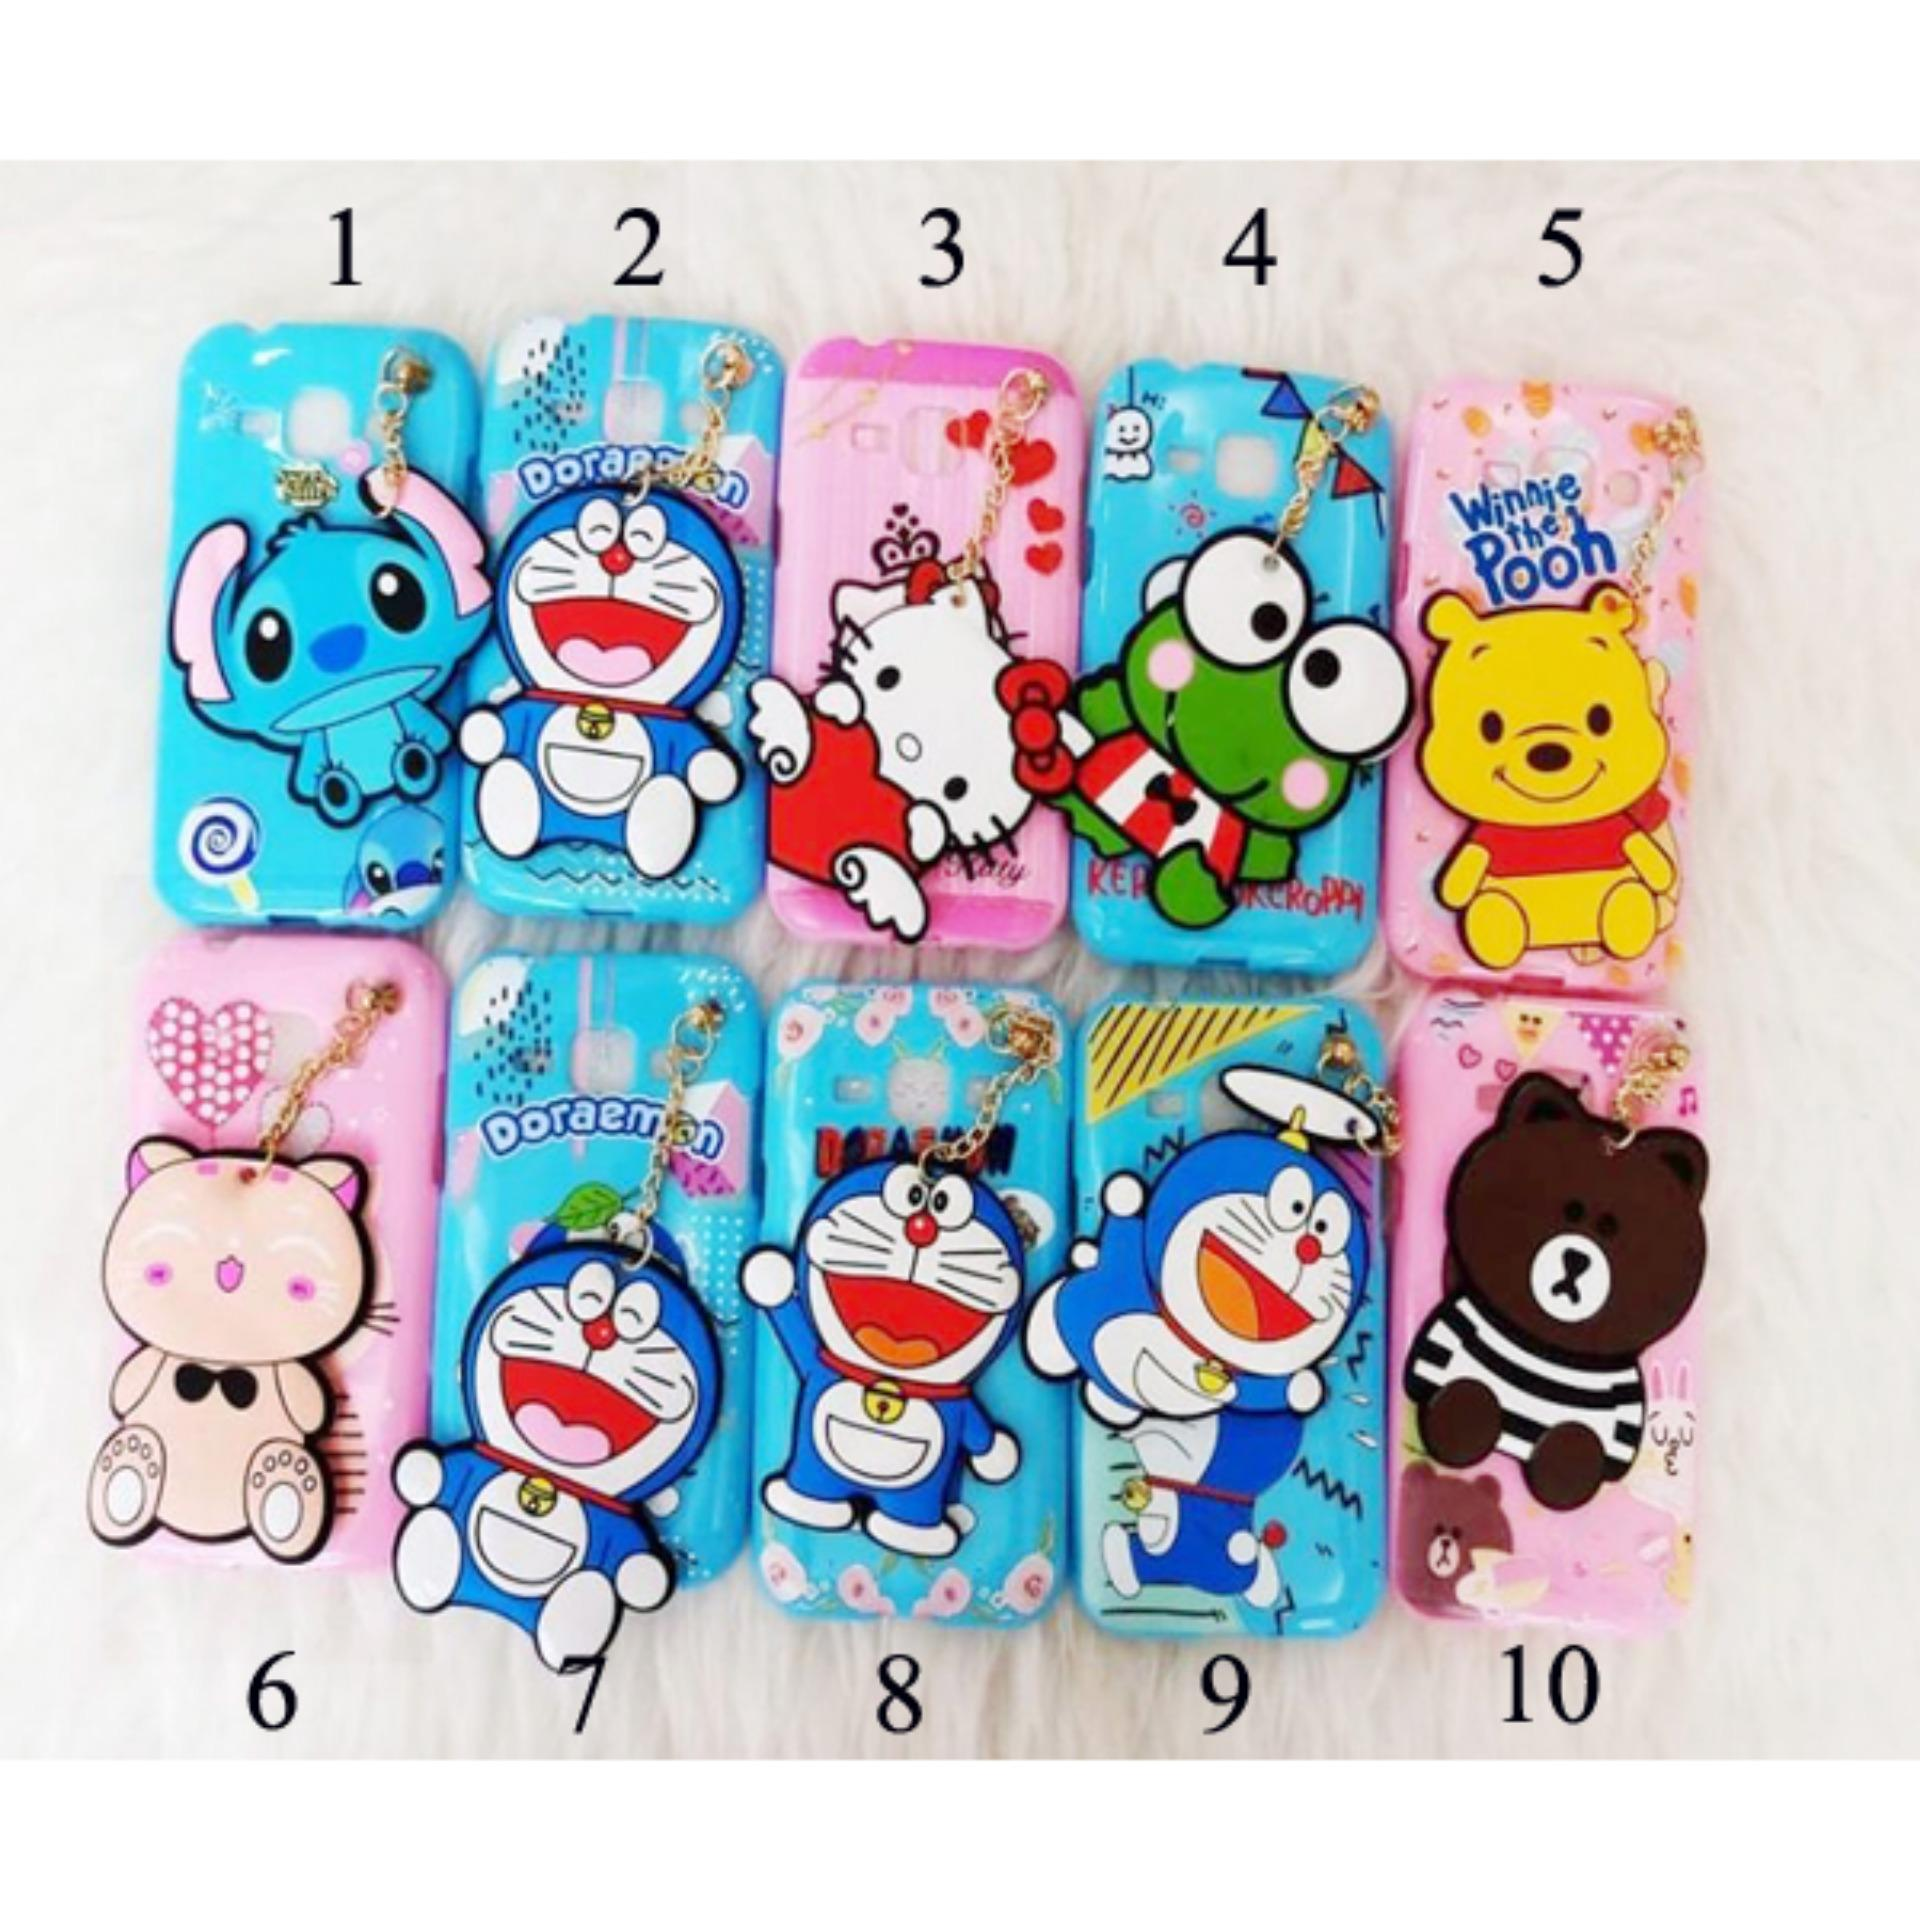 Buy Sell Cheapest Softcase Redmi 4a Best Quality Product Deals Jelly Karakter Timbul Glosy Xiaomi Boneka Busa Lonceng For Msc